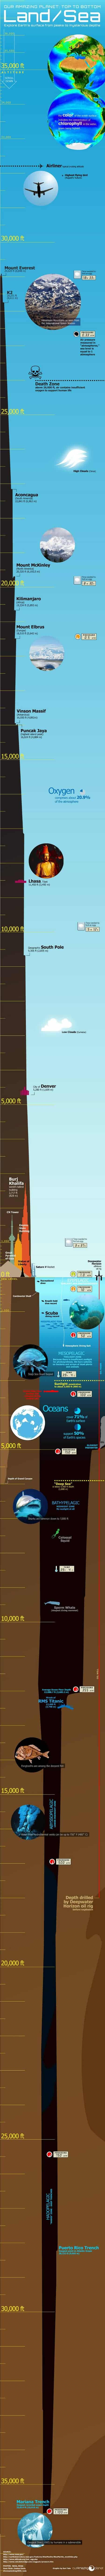 infographic_height_depth_of-Earth